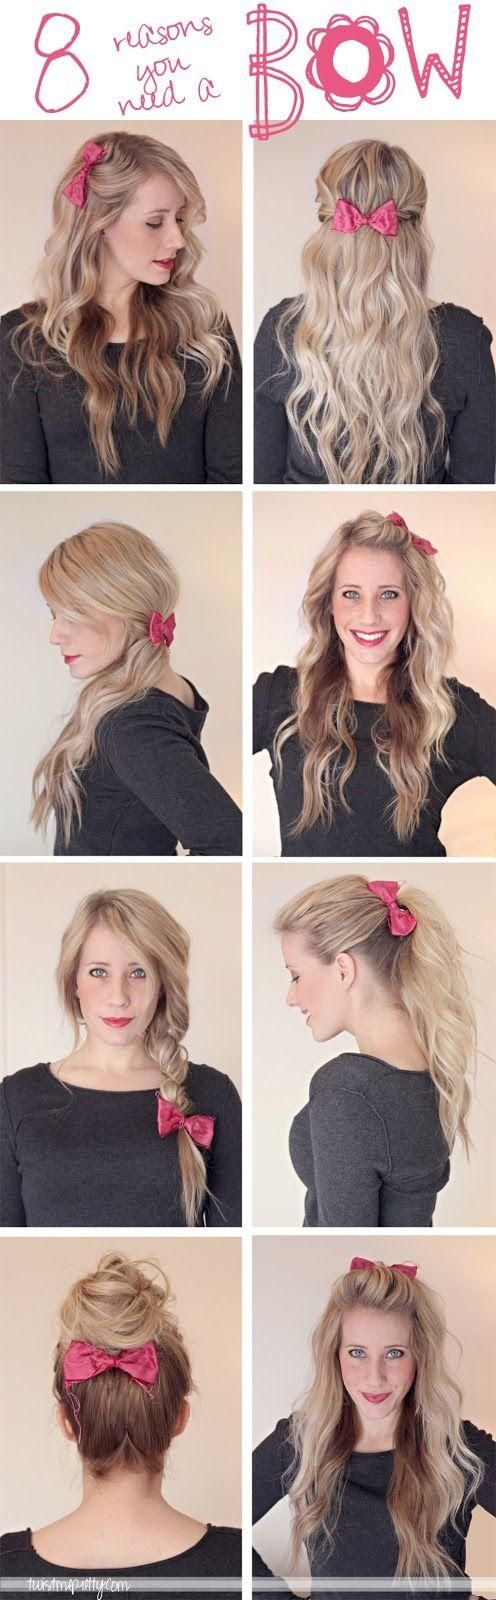 hairstyles to wear a bow hair tutorials hair style makeup and